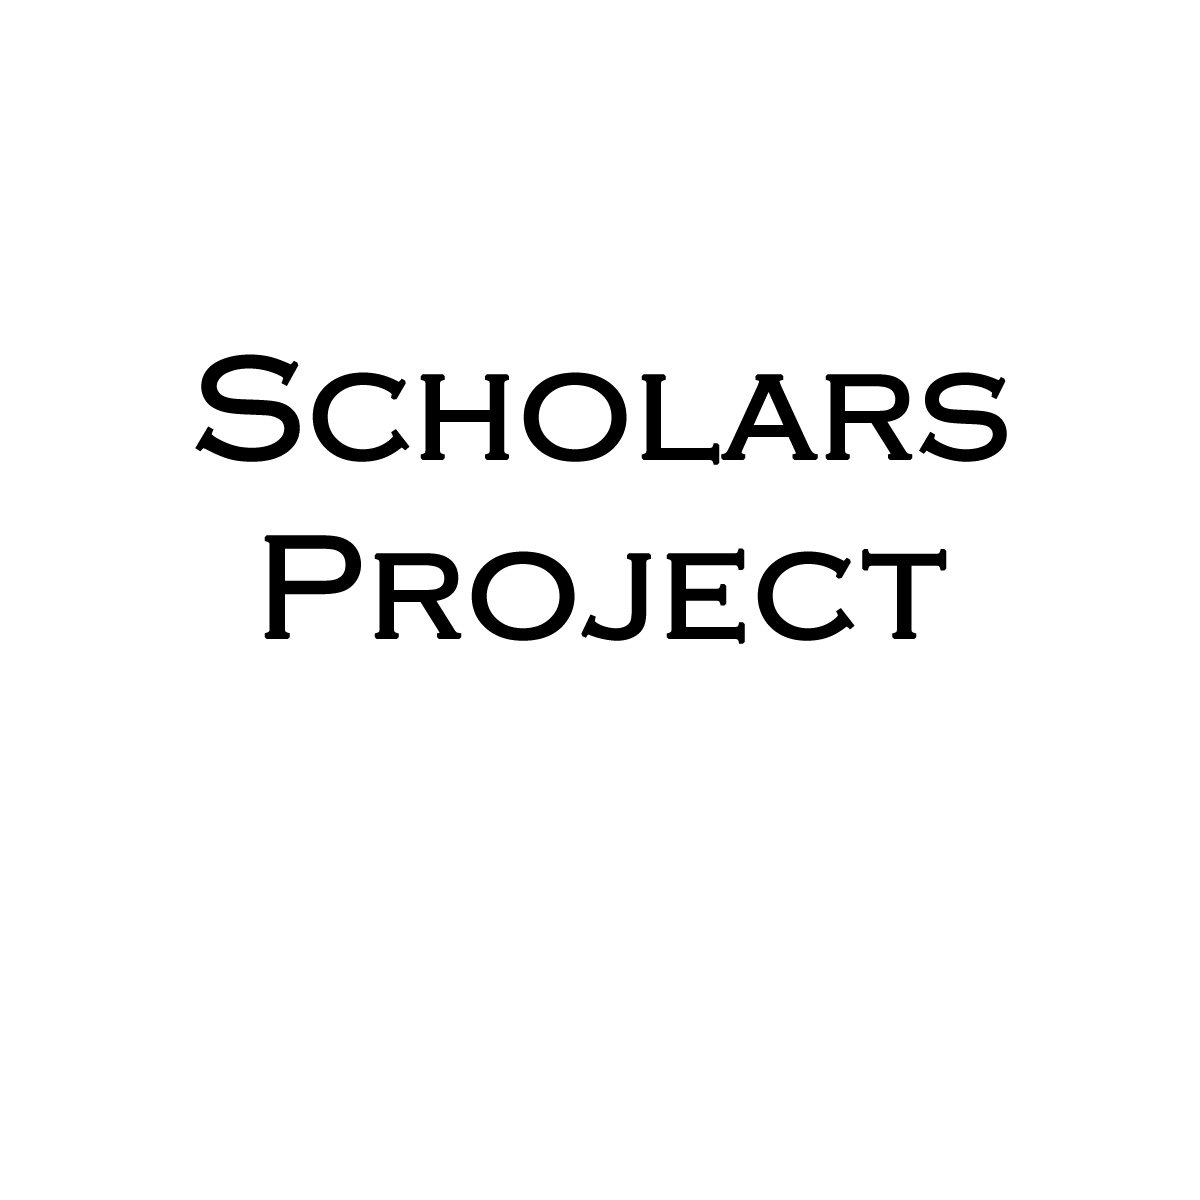 ScholarsProject